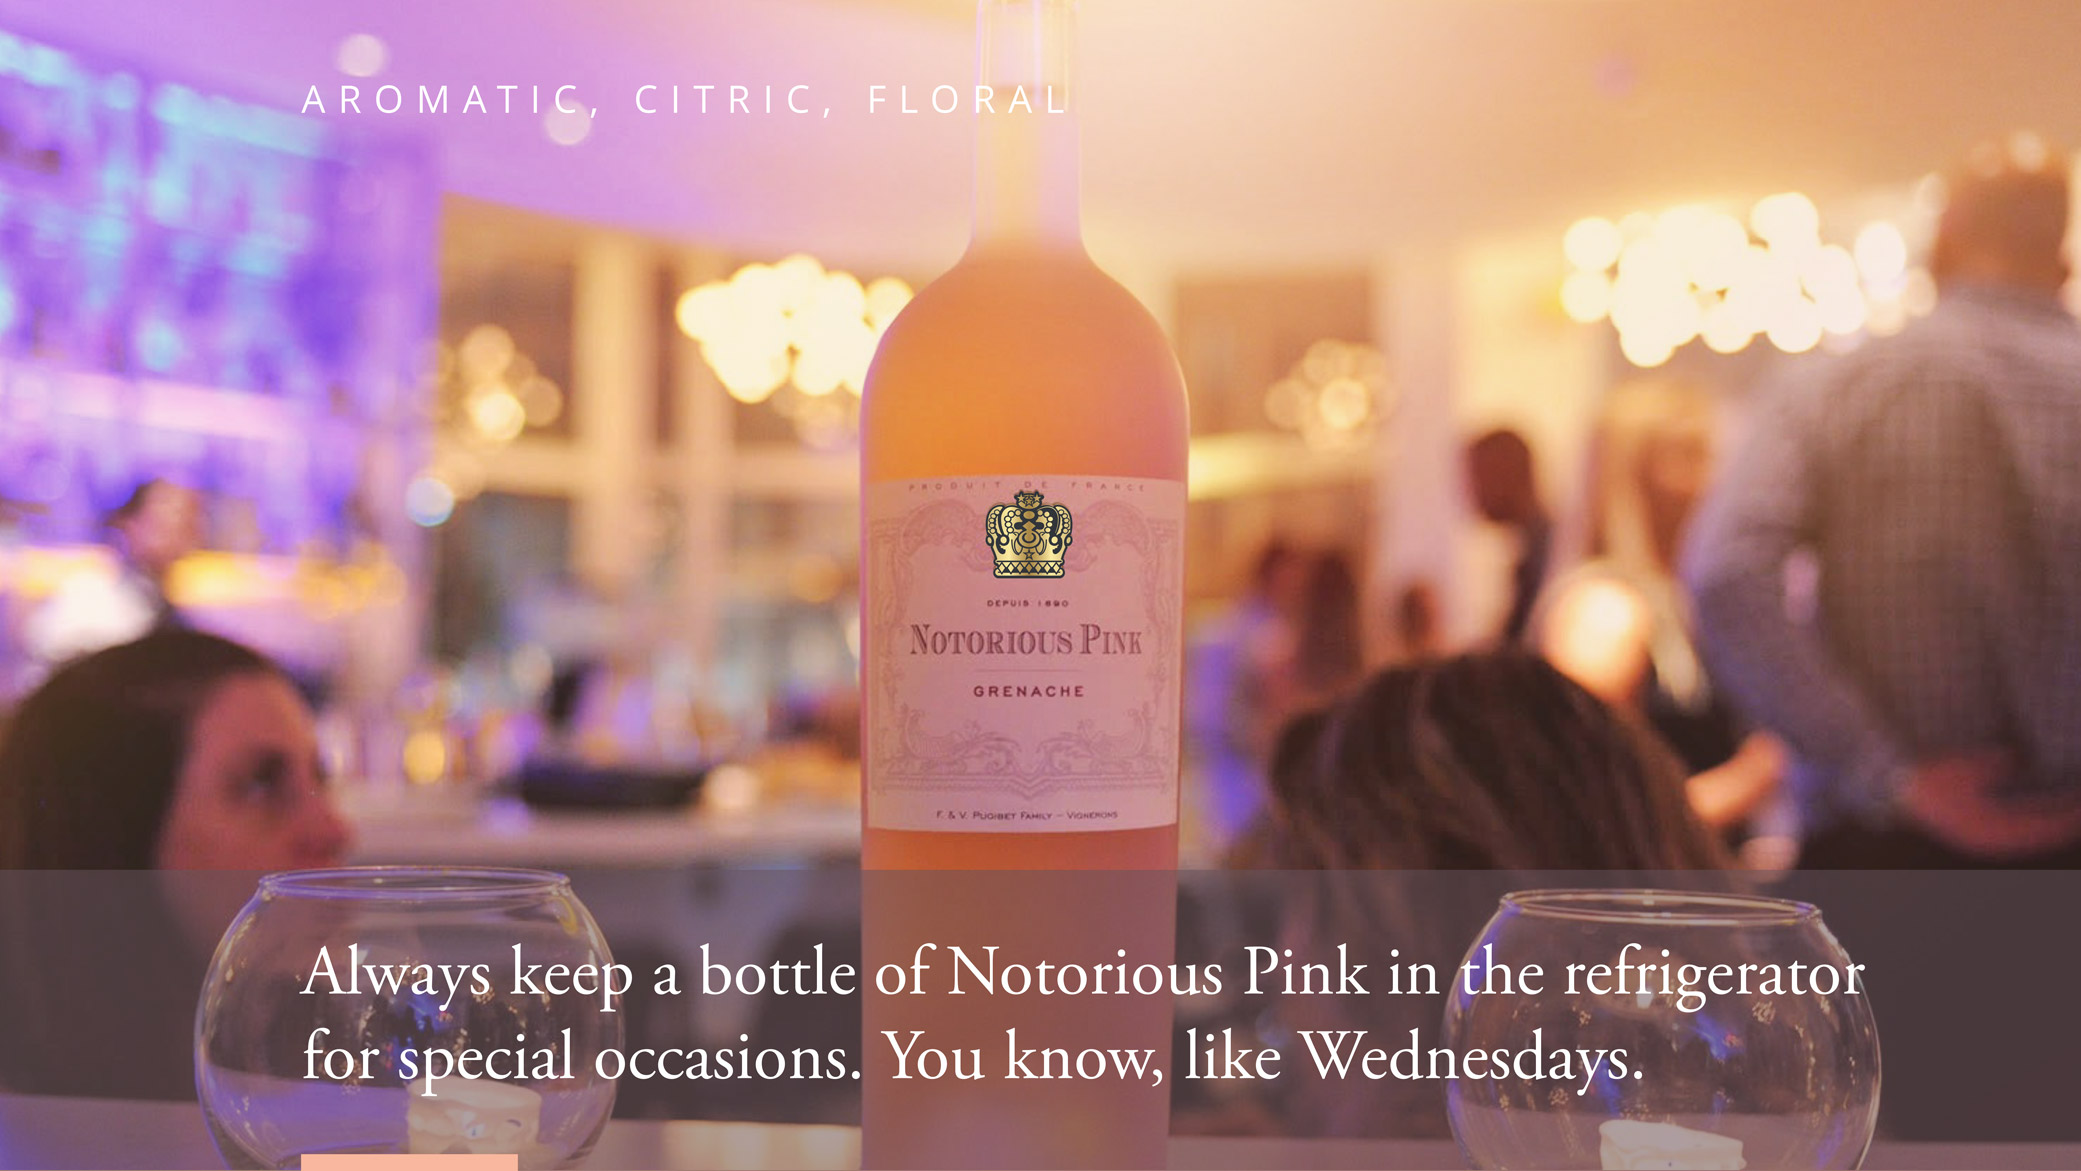 Notorious Pink wine company brand refresh campaign showcasing featured rosé in a dinner setting.